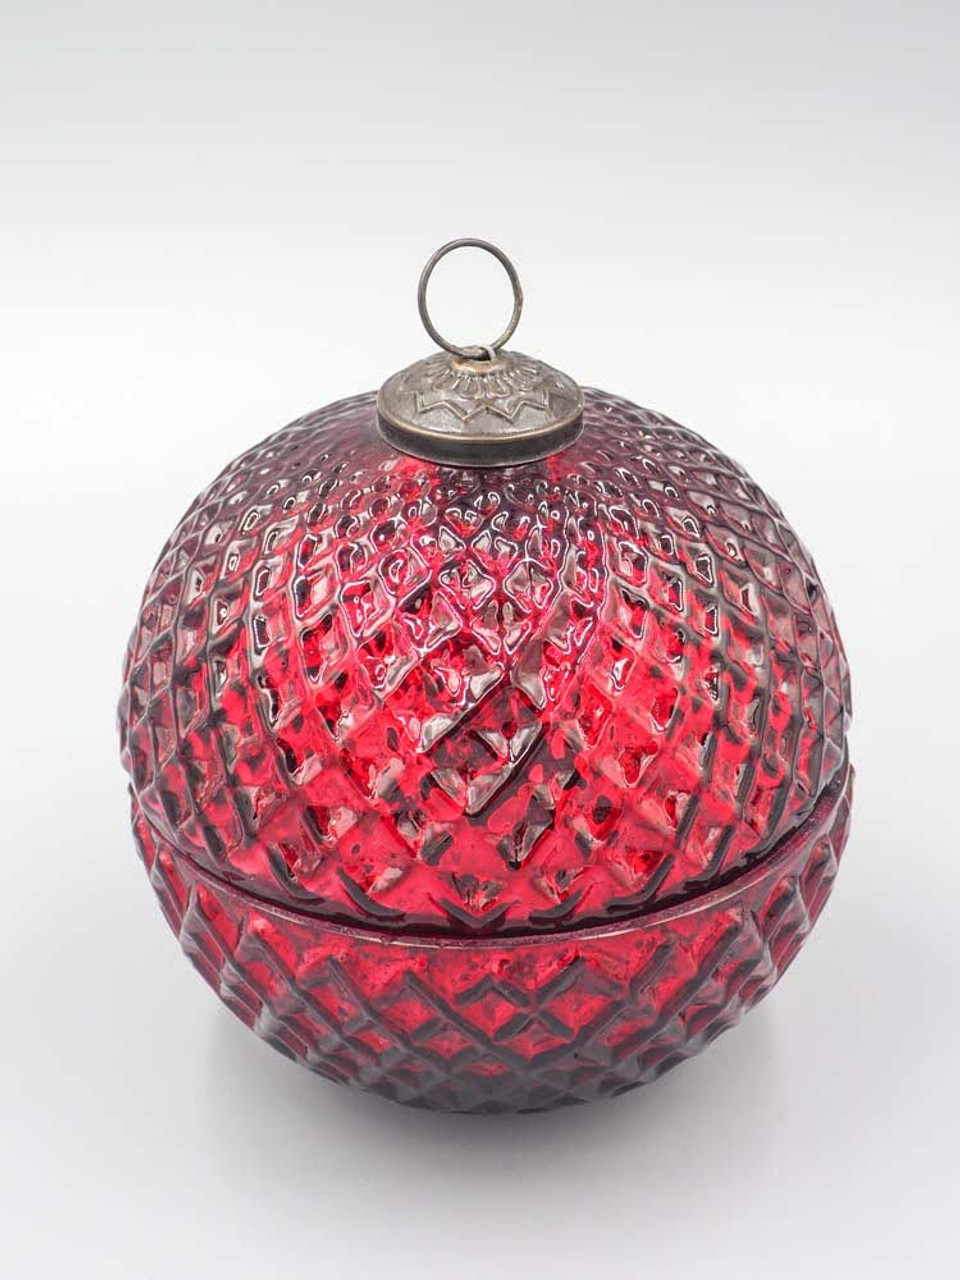 Cranberry Spice Red 7 Inch Ornament Candle